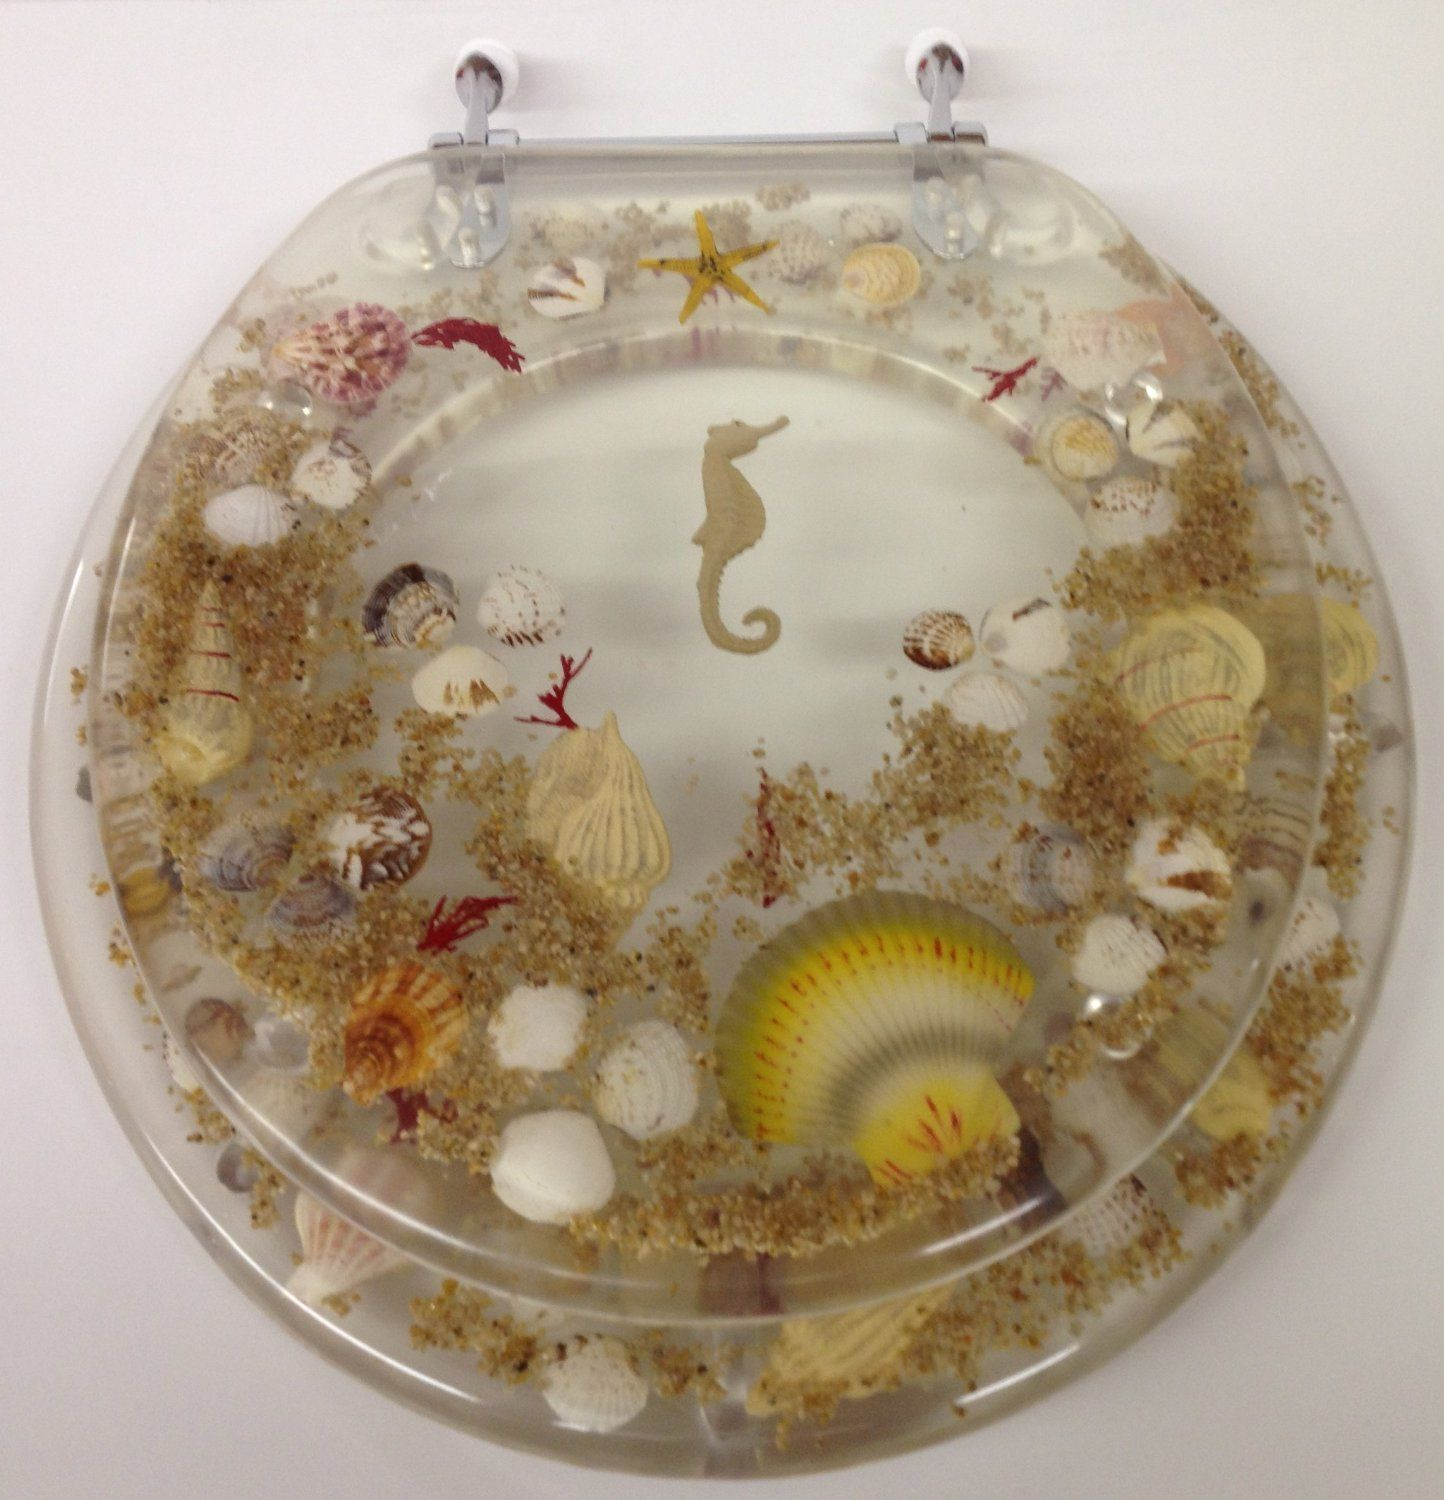 JEWEL SHELL SEASHELL AND SEAHORSE RESIN TOILET SEAT, CHROME HINGES STANDARD SIZE